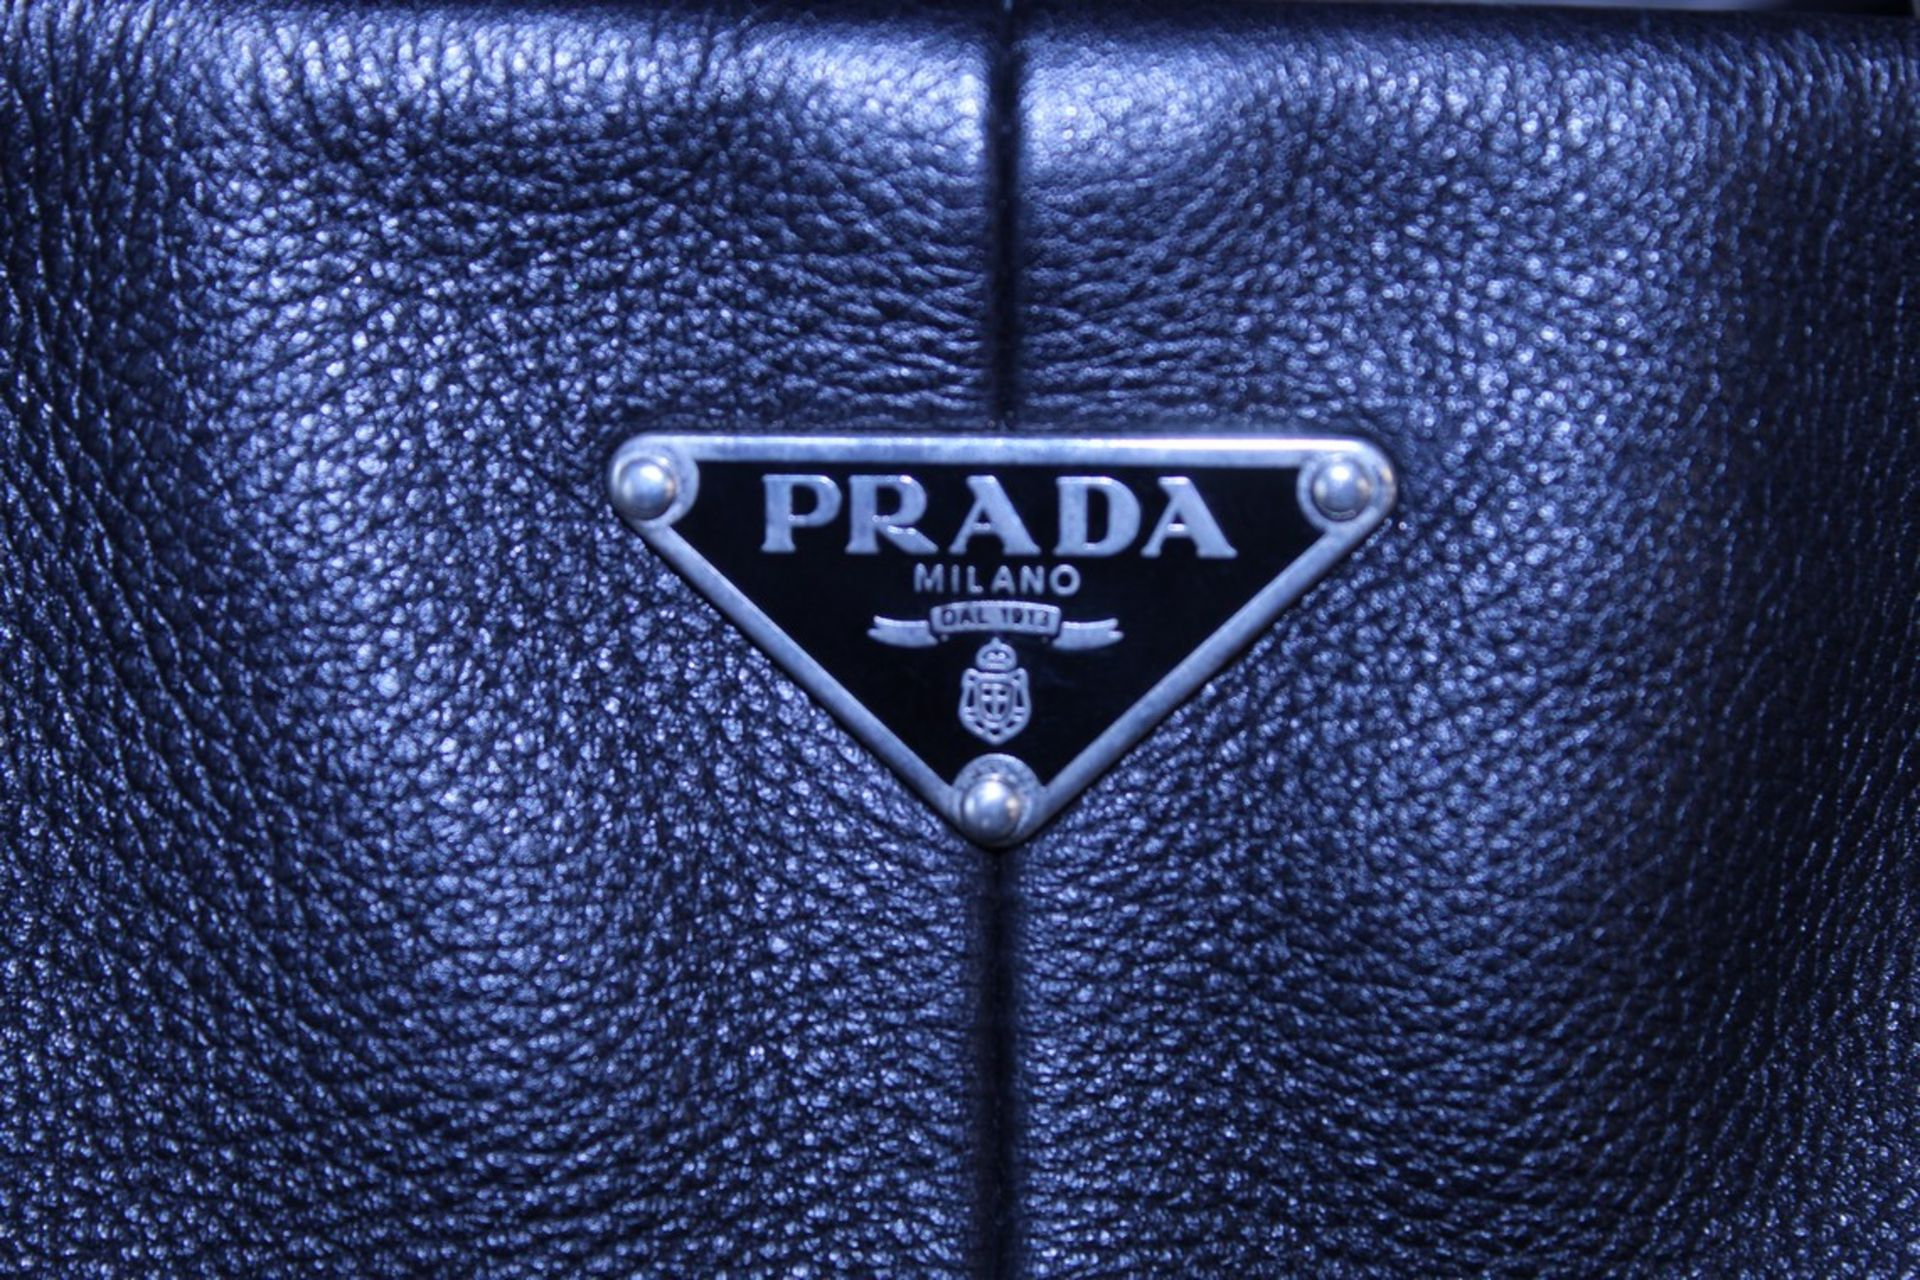 RRP £1200 Prada Side Pocket Tote Shoulder Bag In Black Small Grained Leather With Black Leather - Image 2 of 4